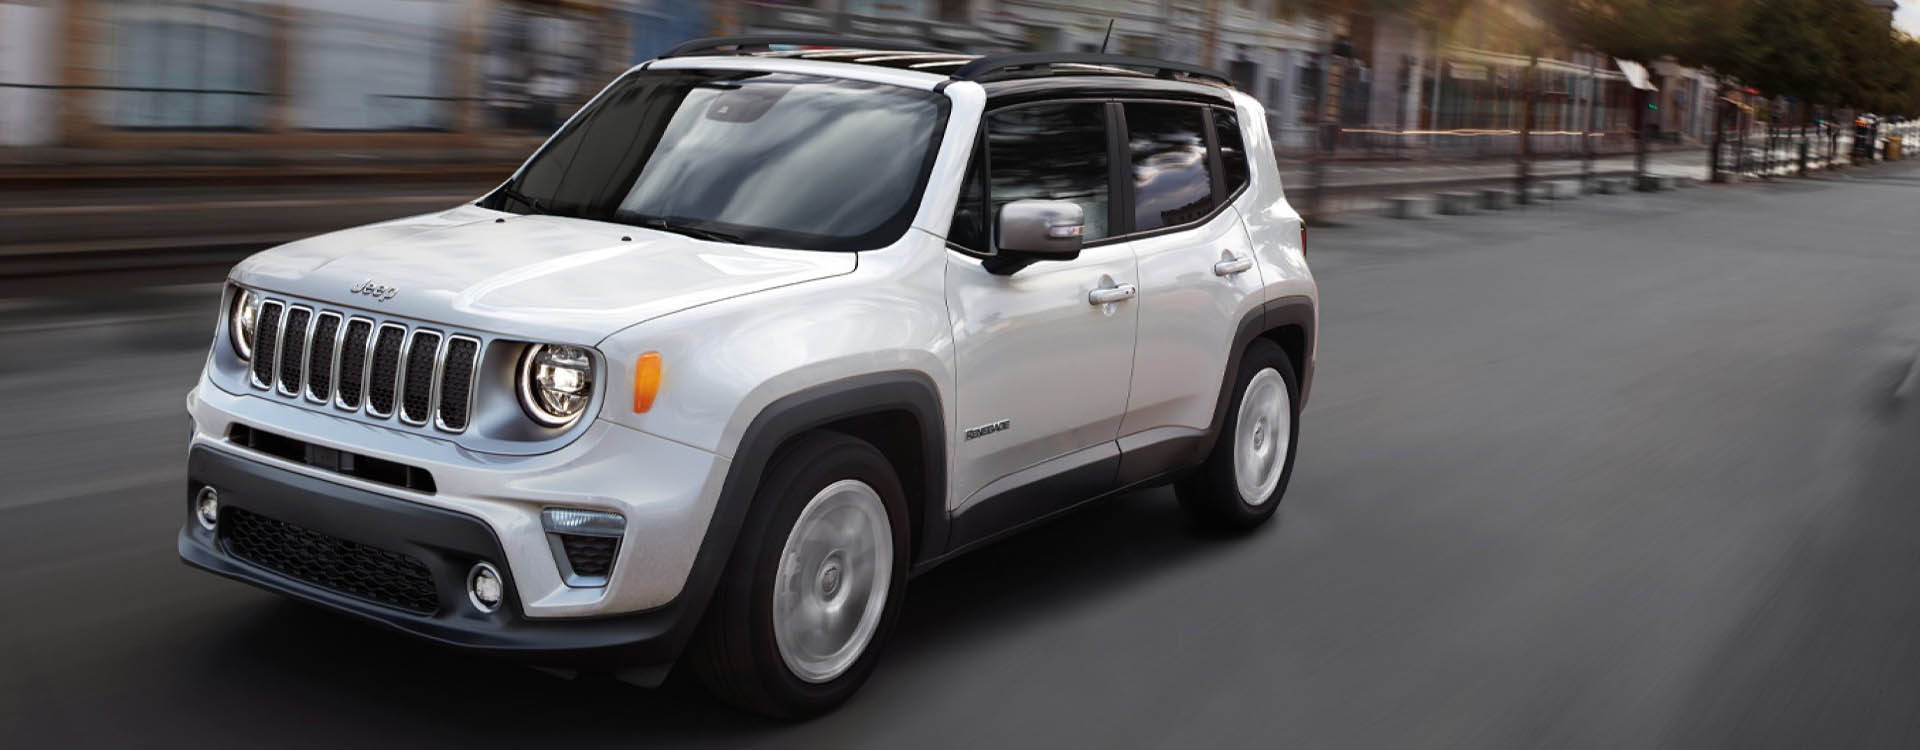 2020 Jeep Renegade for sale